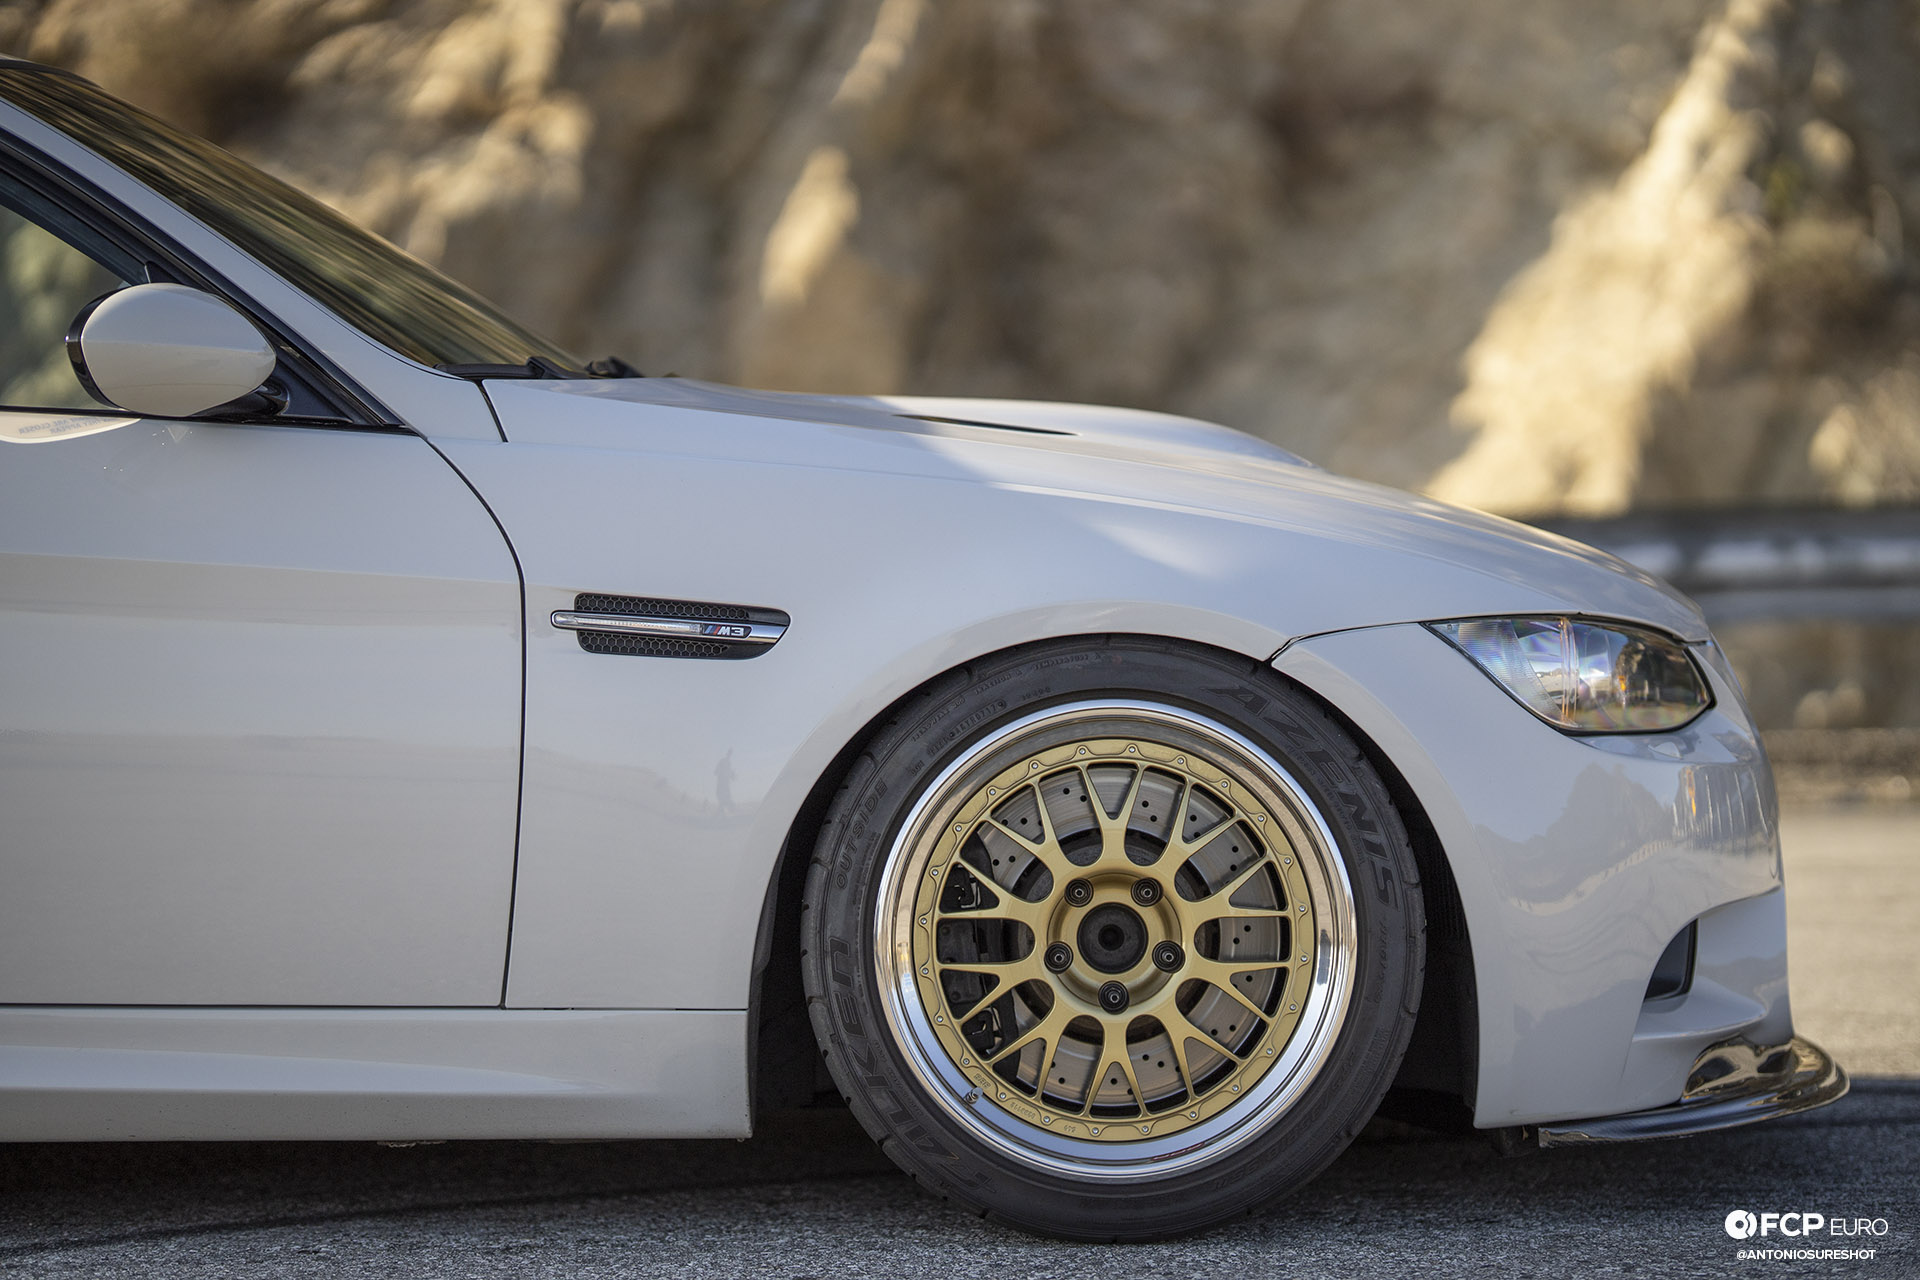 BMW E90 M3 Sedan Slicktop BBS E88 KW Suspension BBS Wheels